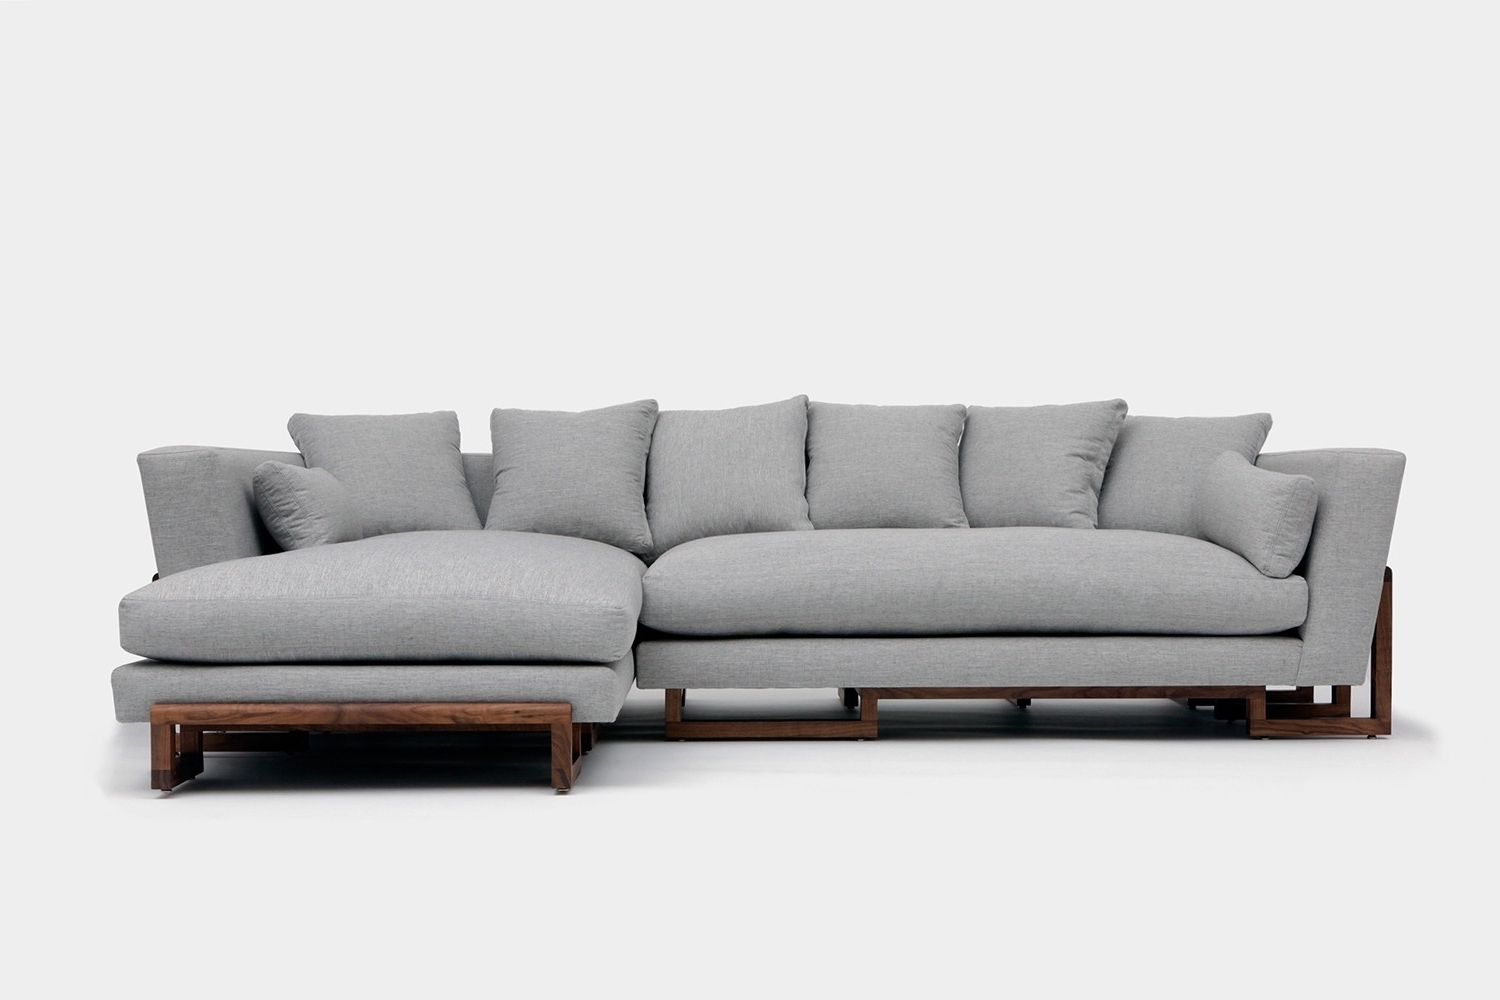 Sofa Lounge Chairs For Well Known Sofas + Lounge Chairs – Furniture (View 15 of 20)